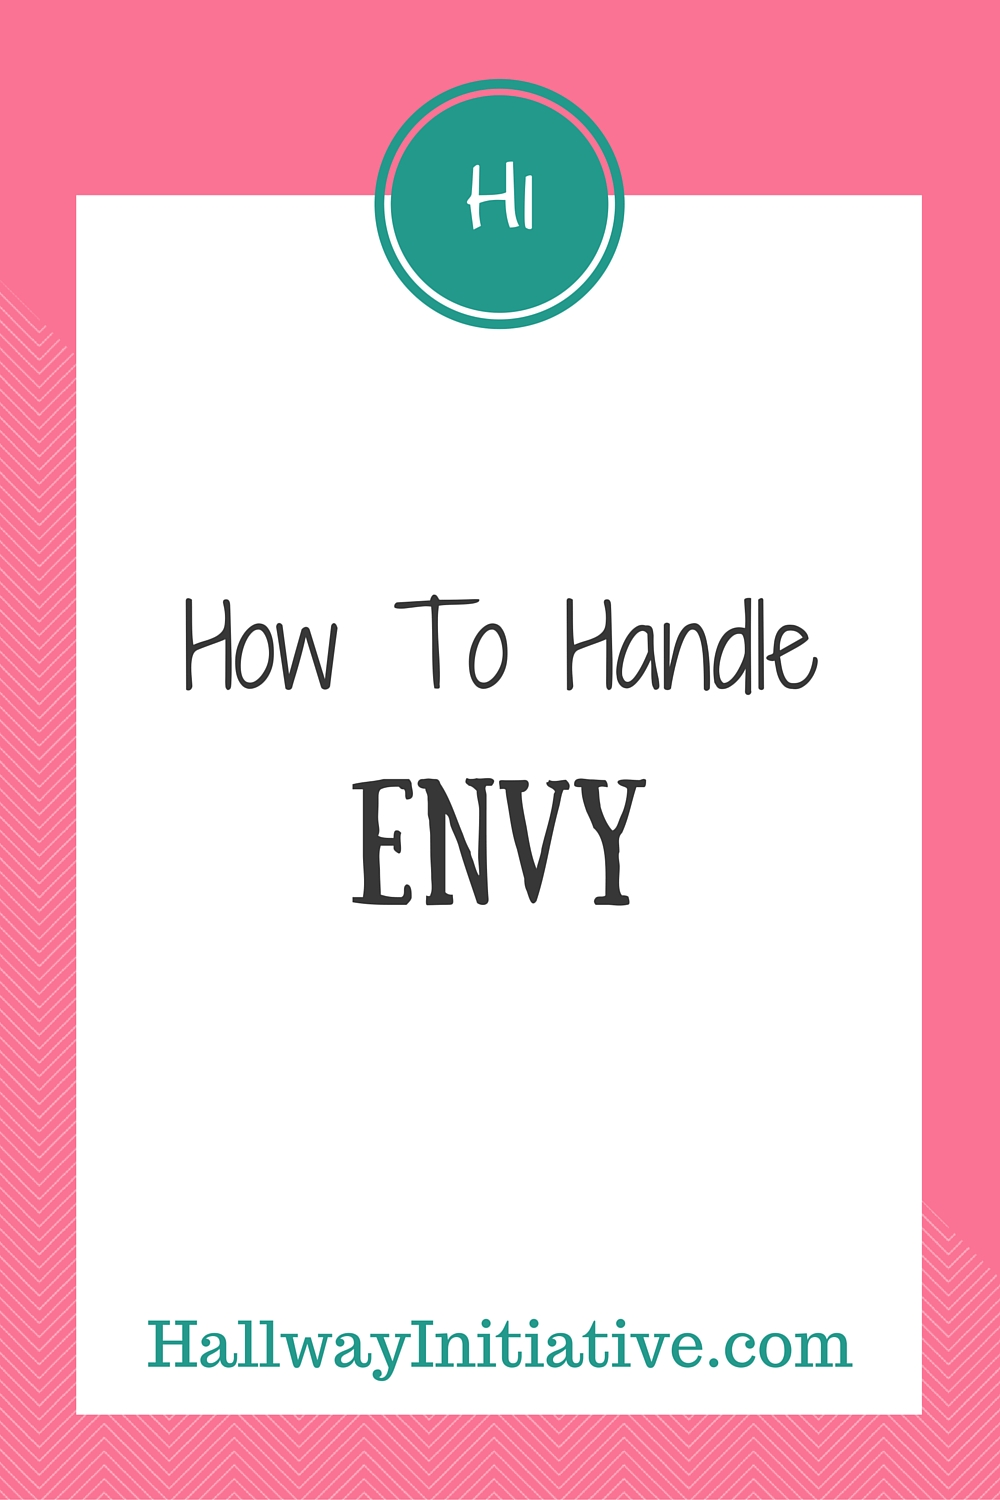 How to handle envy